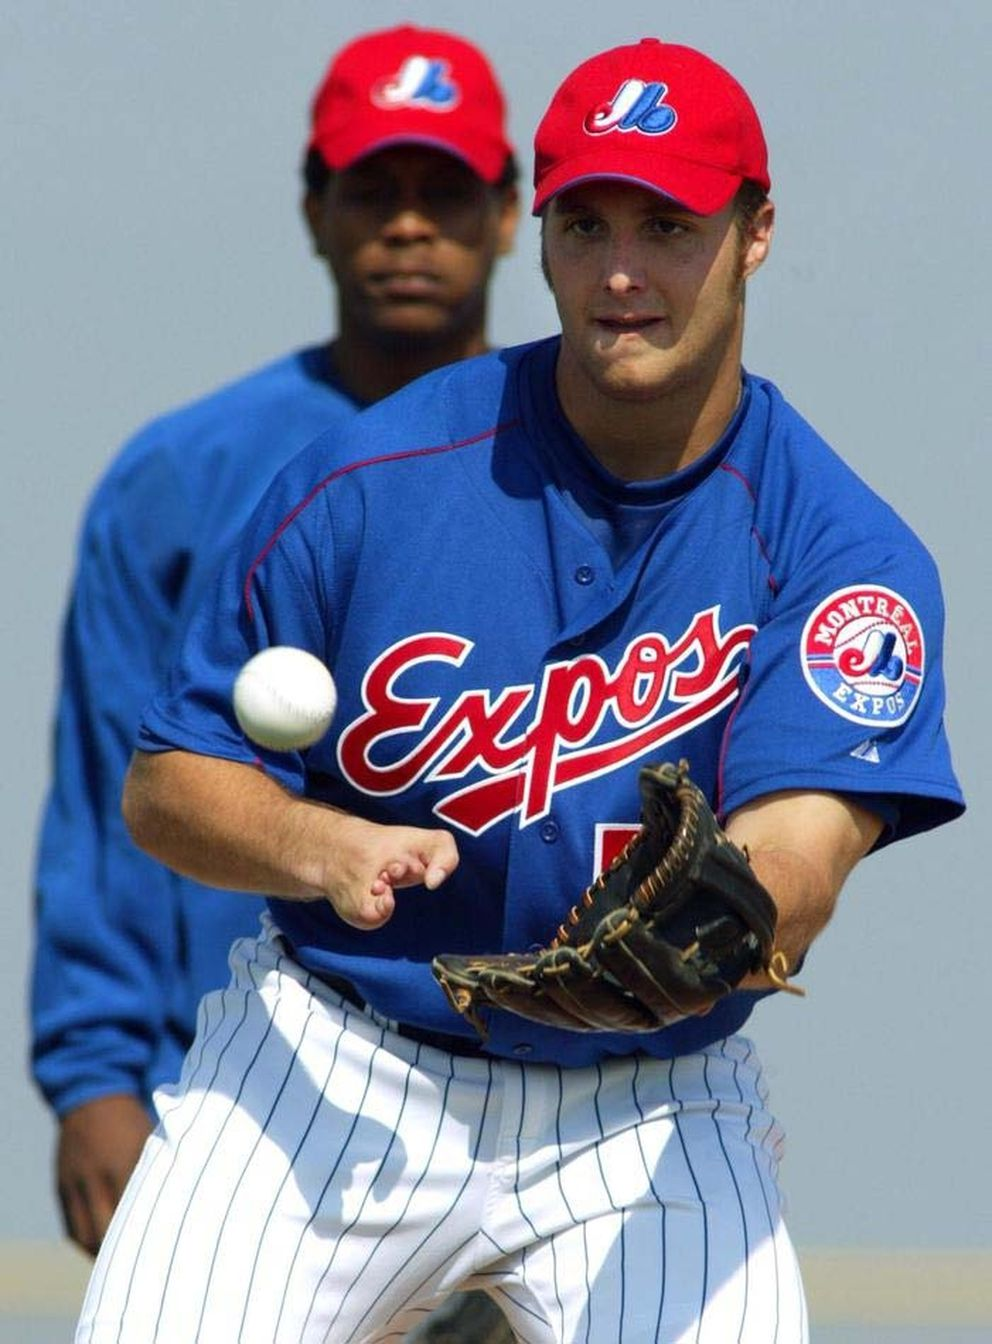 Chad Bentz spent a season pitching for the Montreal Expos despite being born with a deformed hand. (Associated Press)